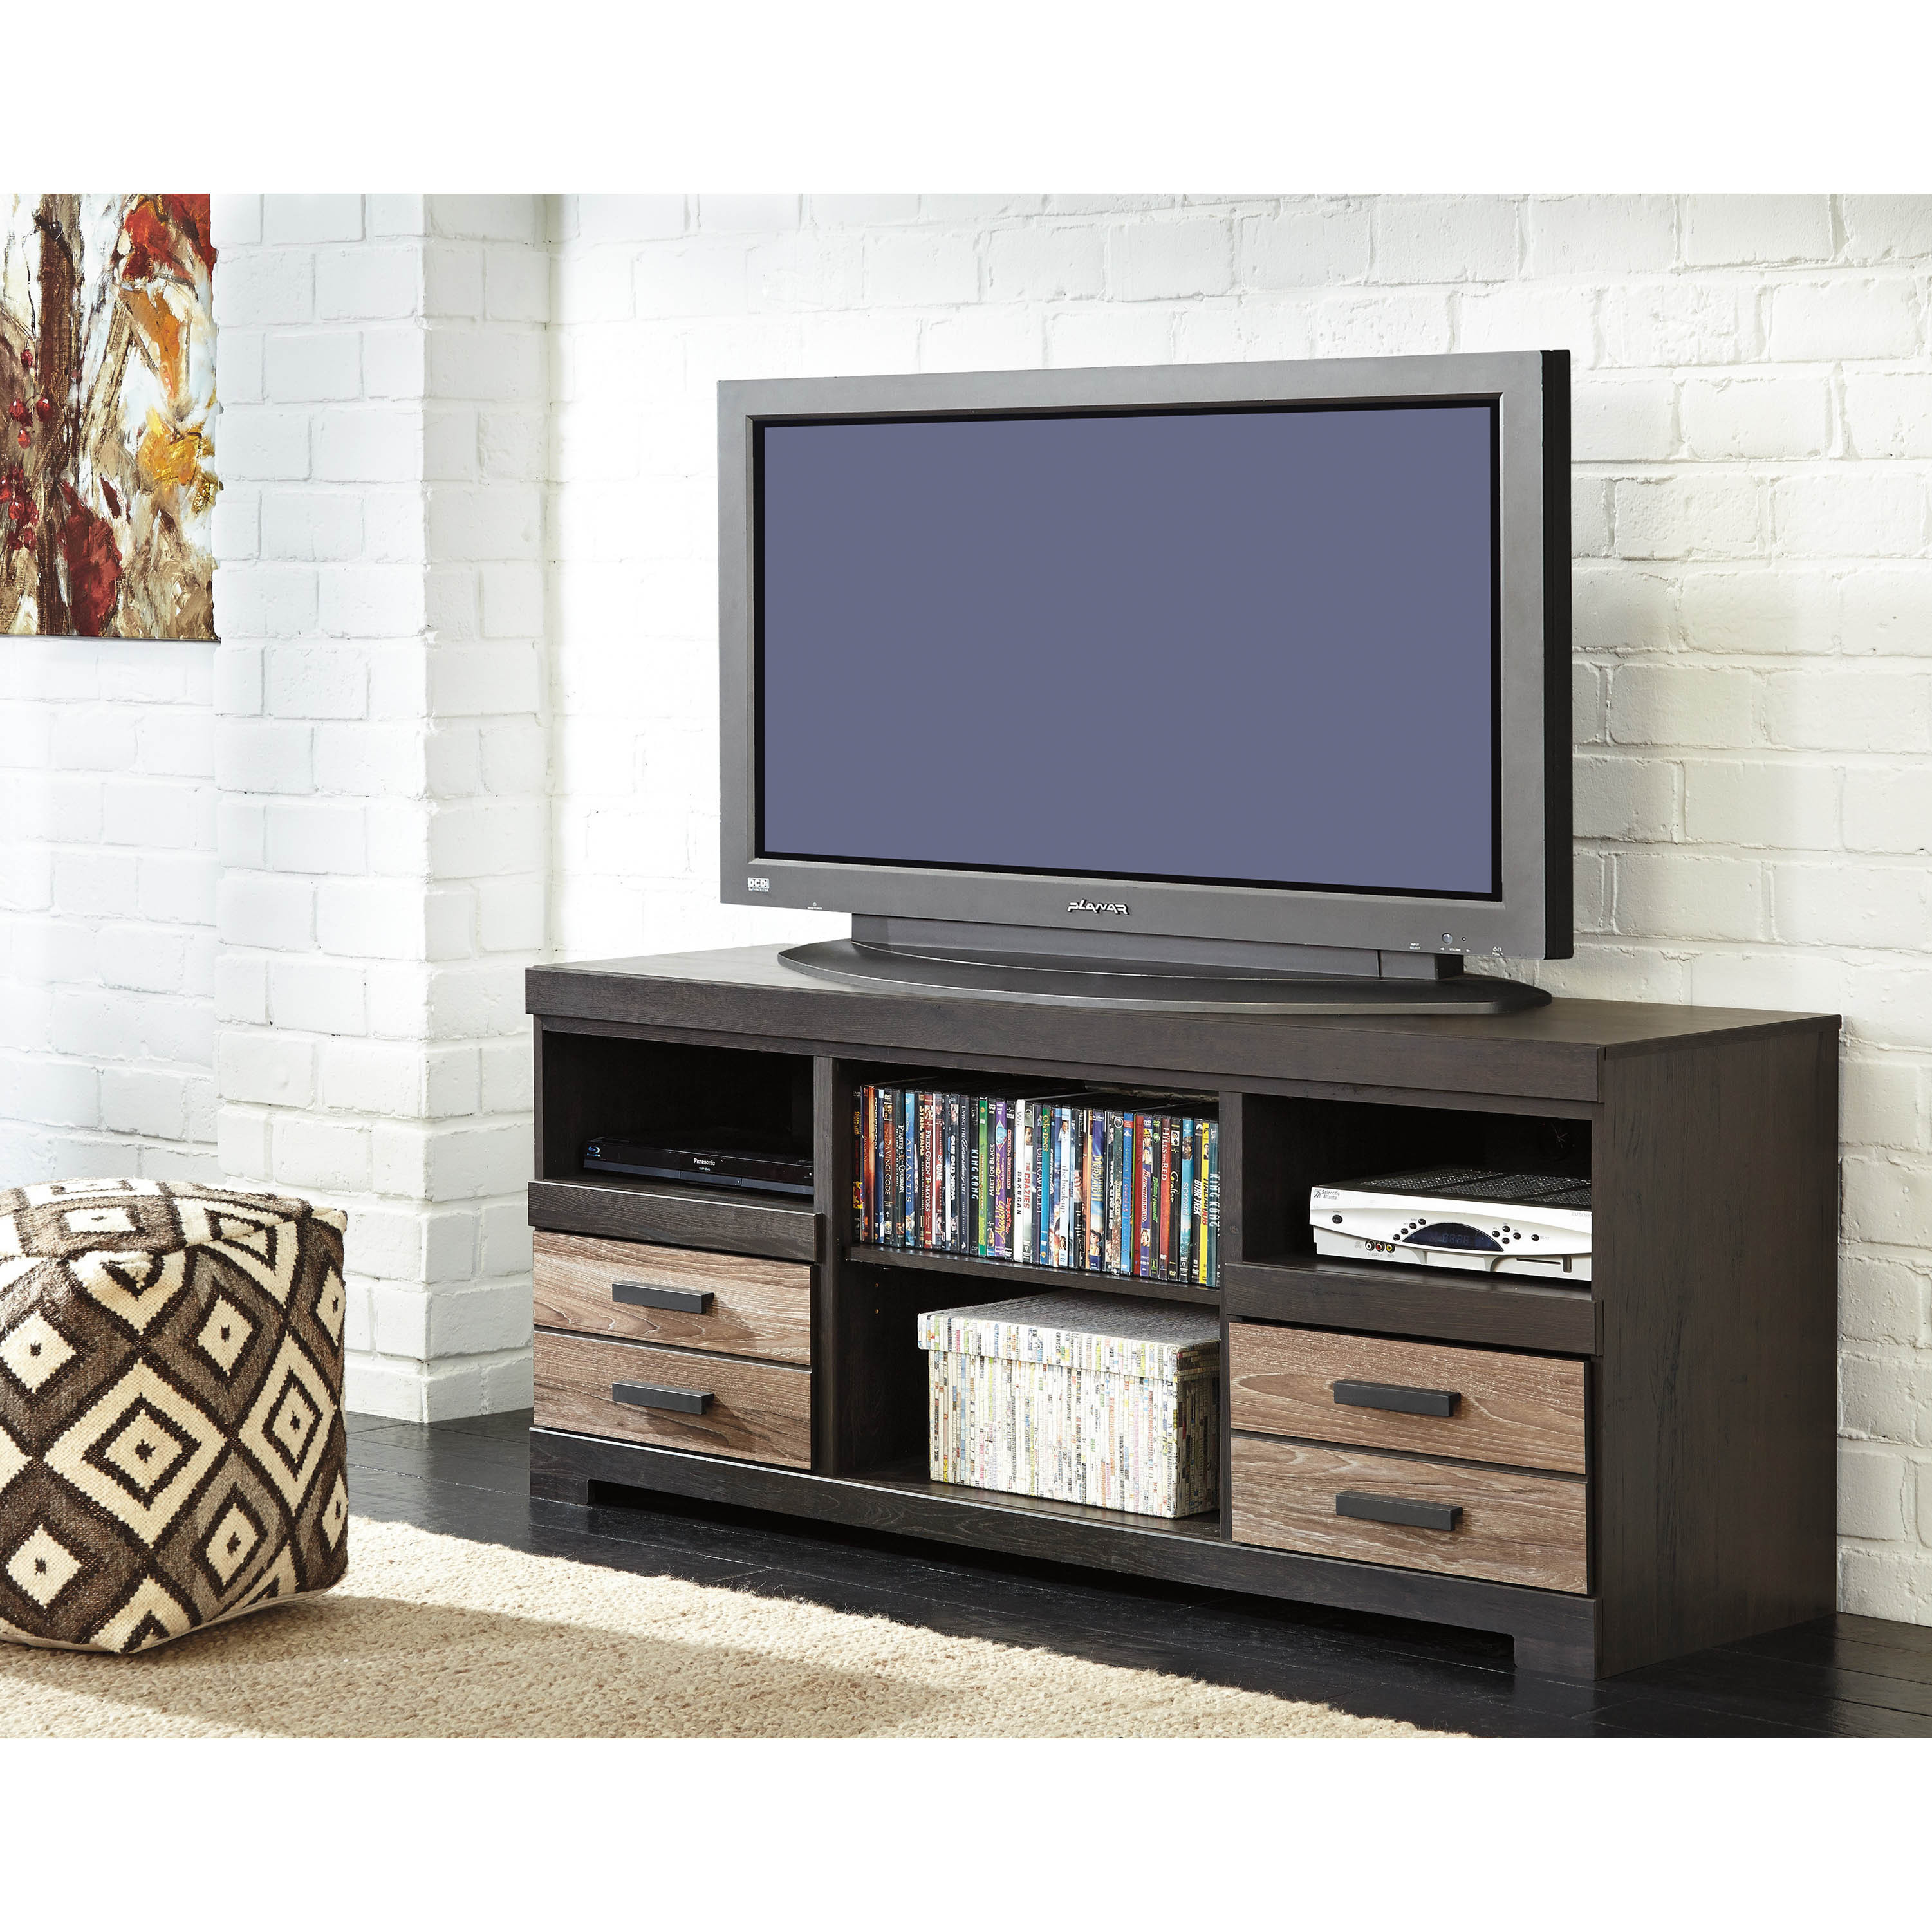 shop signature design by ashley harlinton warm gray lg tv stand free shipping today overstock com 10758621